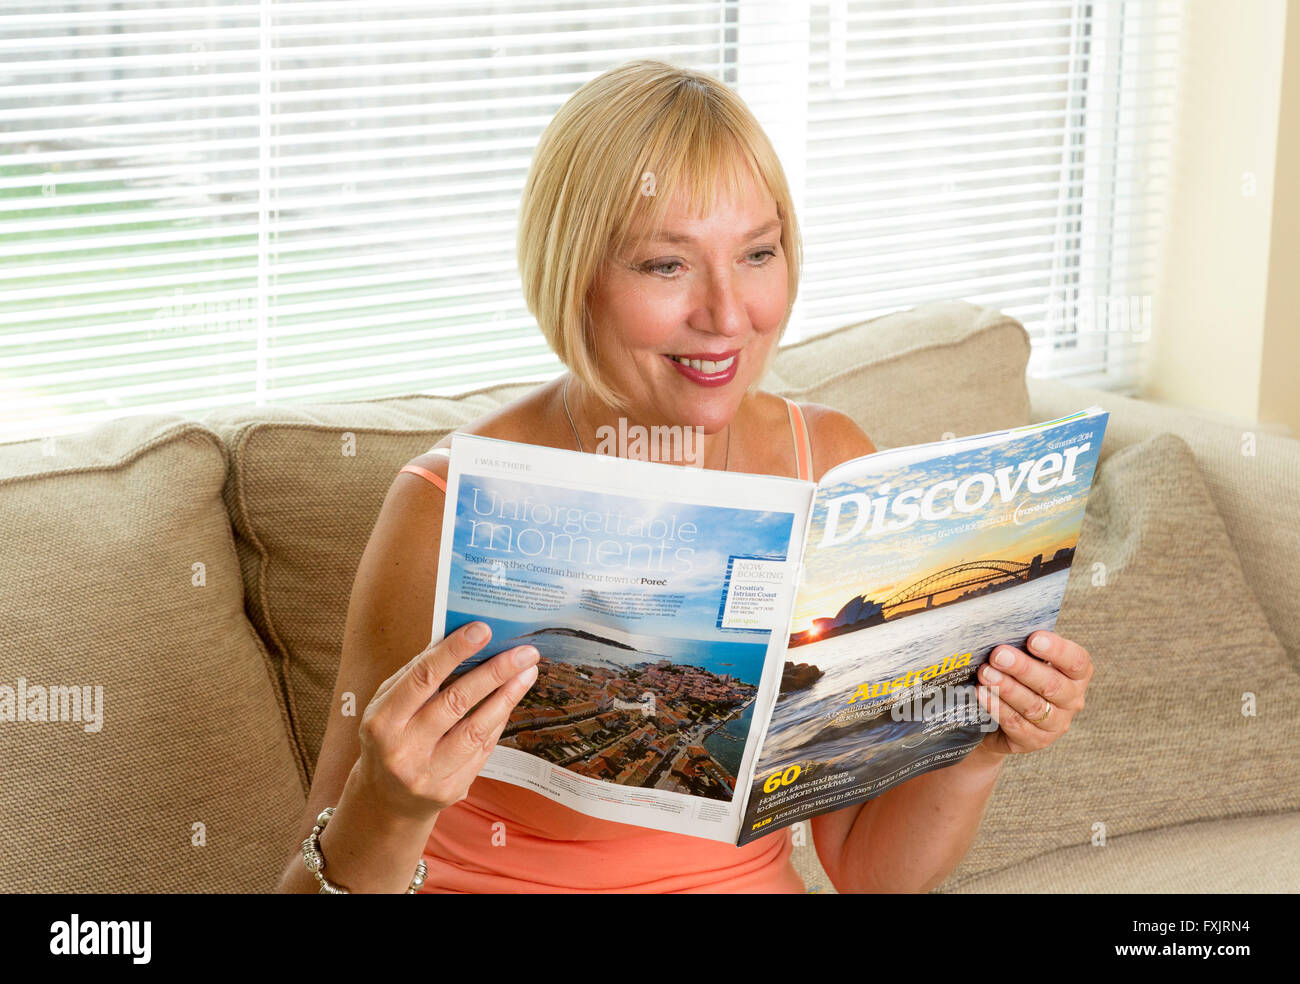 woman reading a travel guide magazine - Stock Image